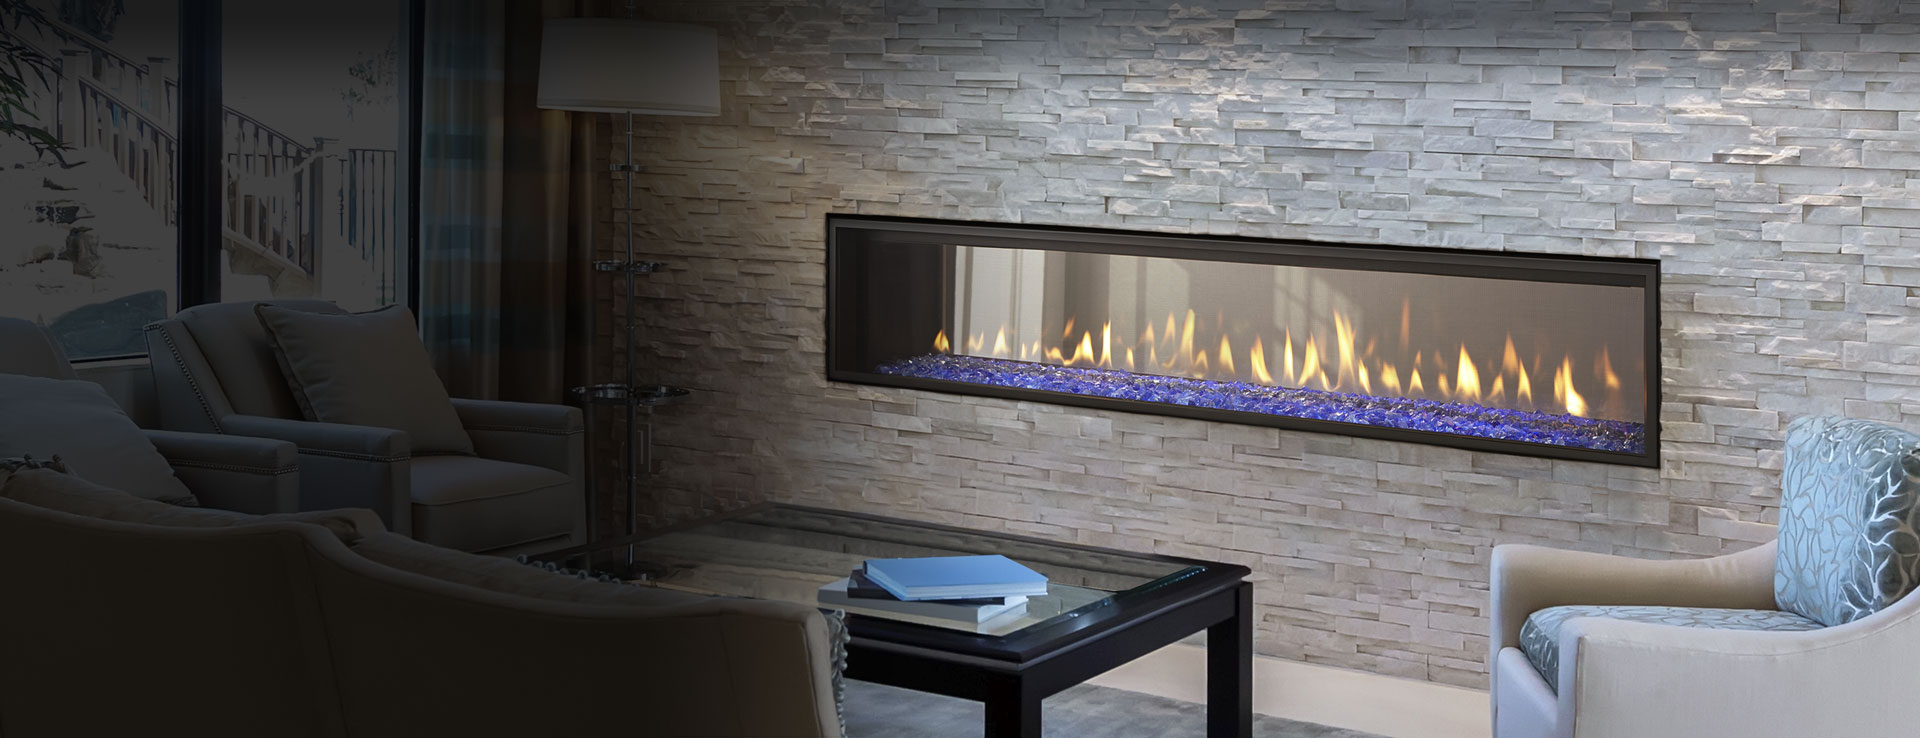 <p>Crave See-Through Gas Fireplace</p>